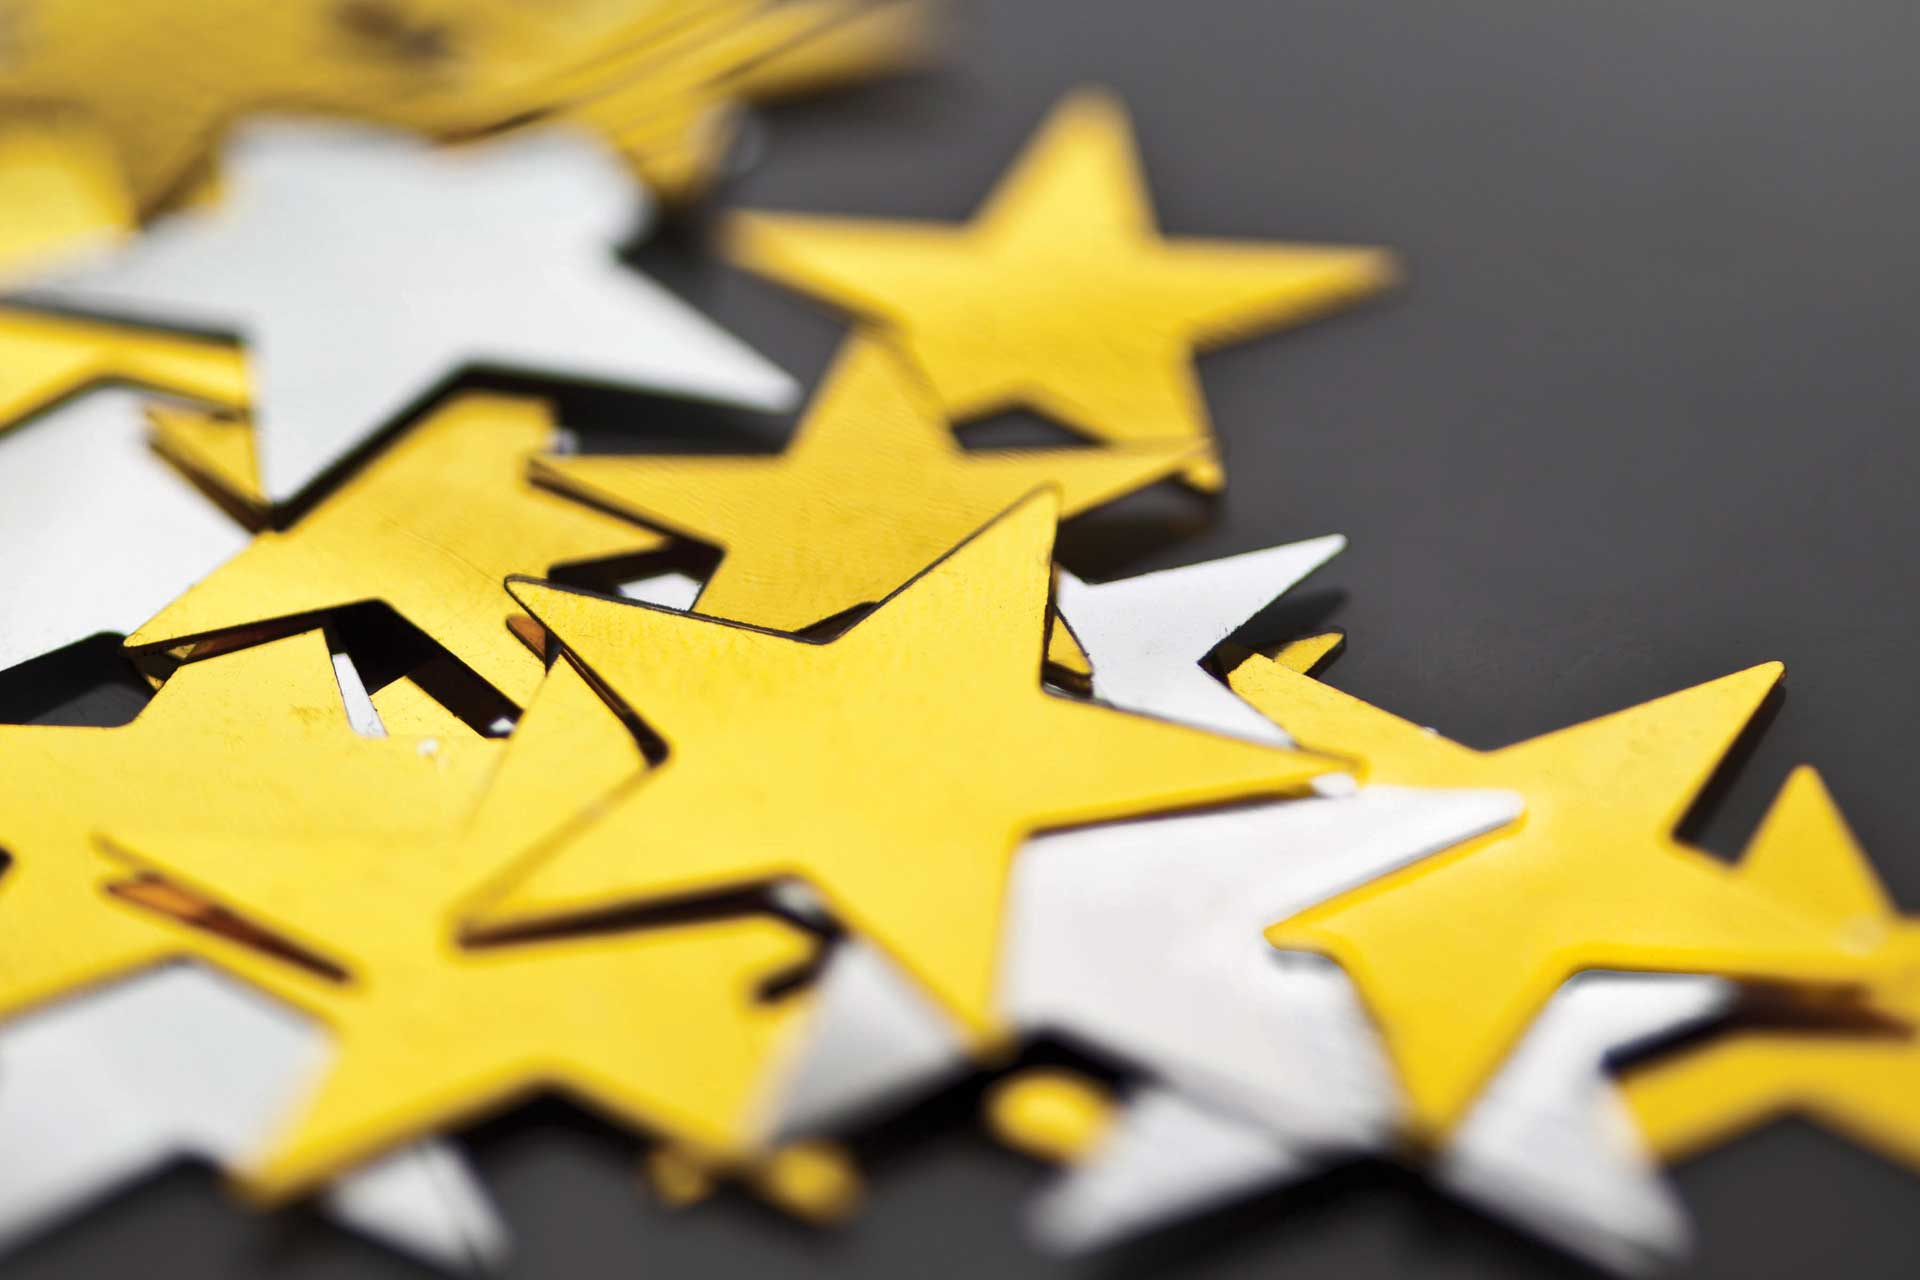 A collection of gold stars